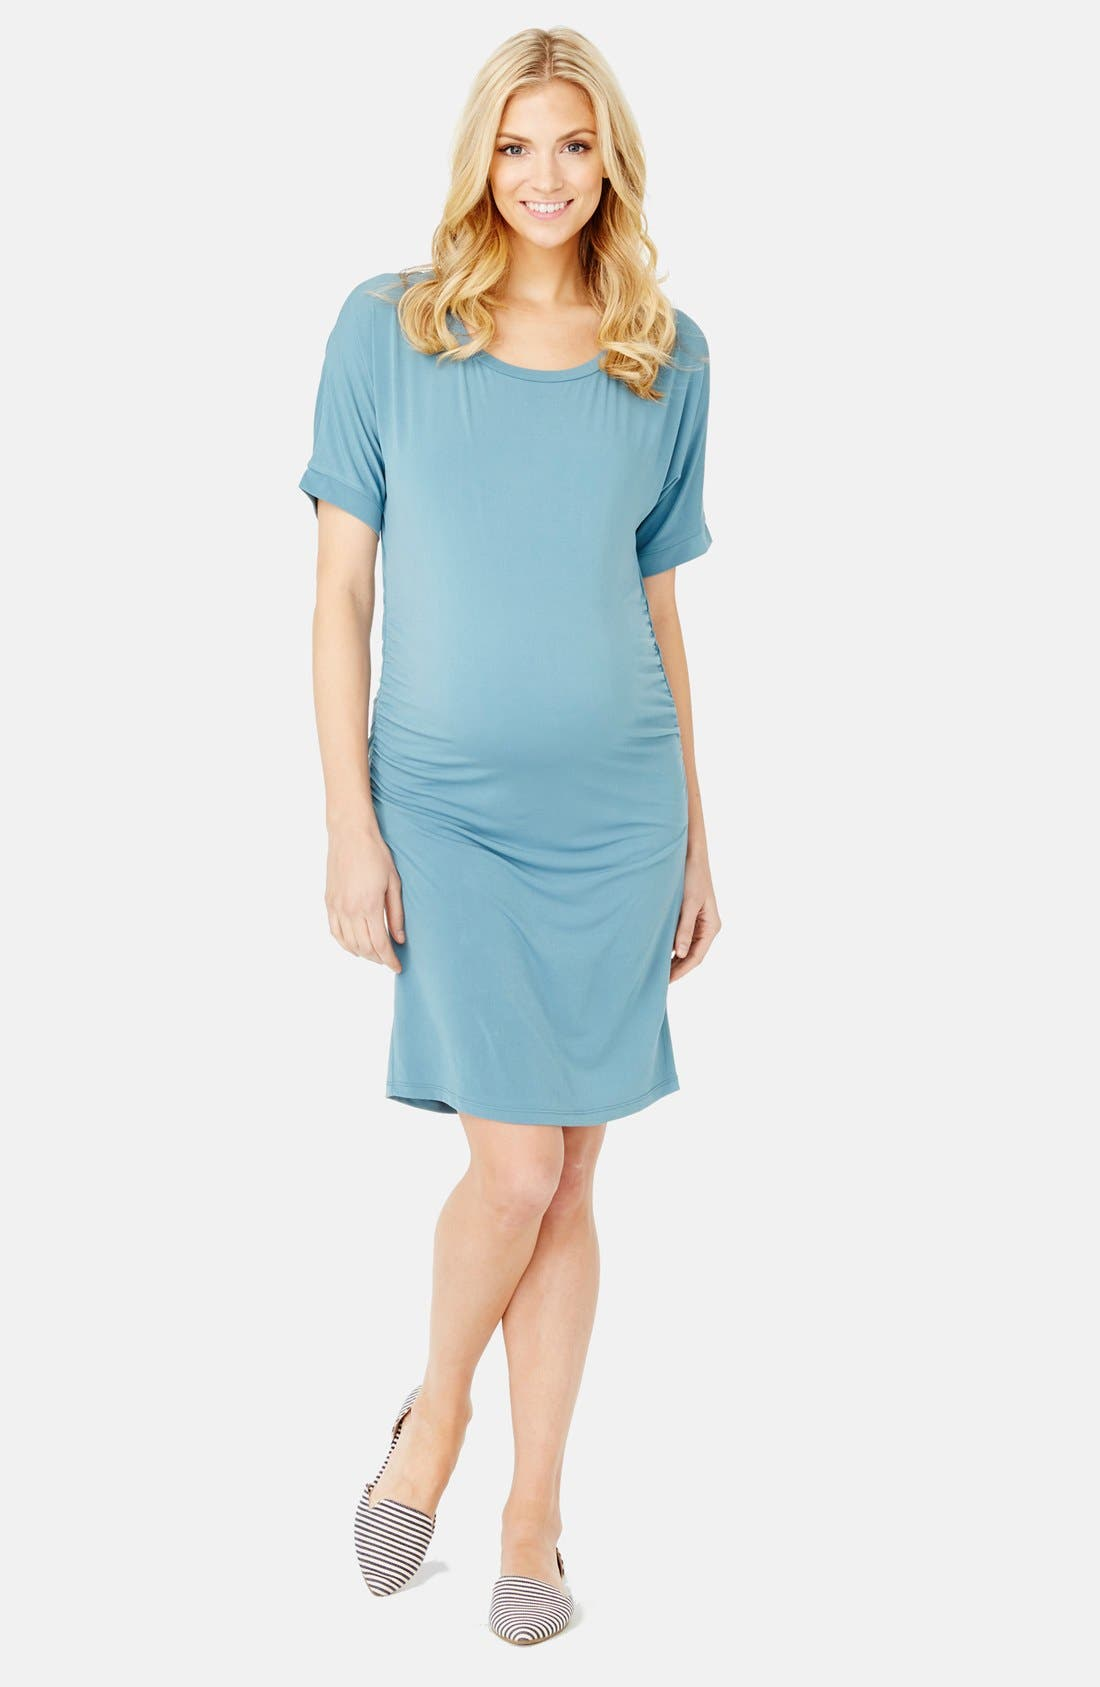 Rosie Pope 'Lauren' Maternity Dress